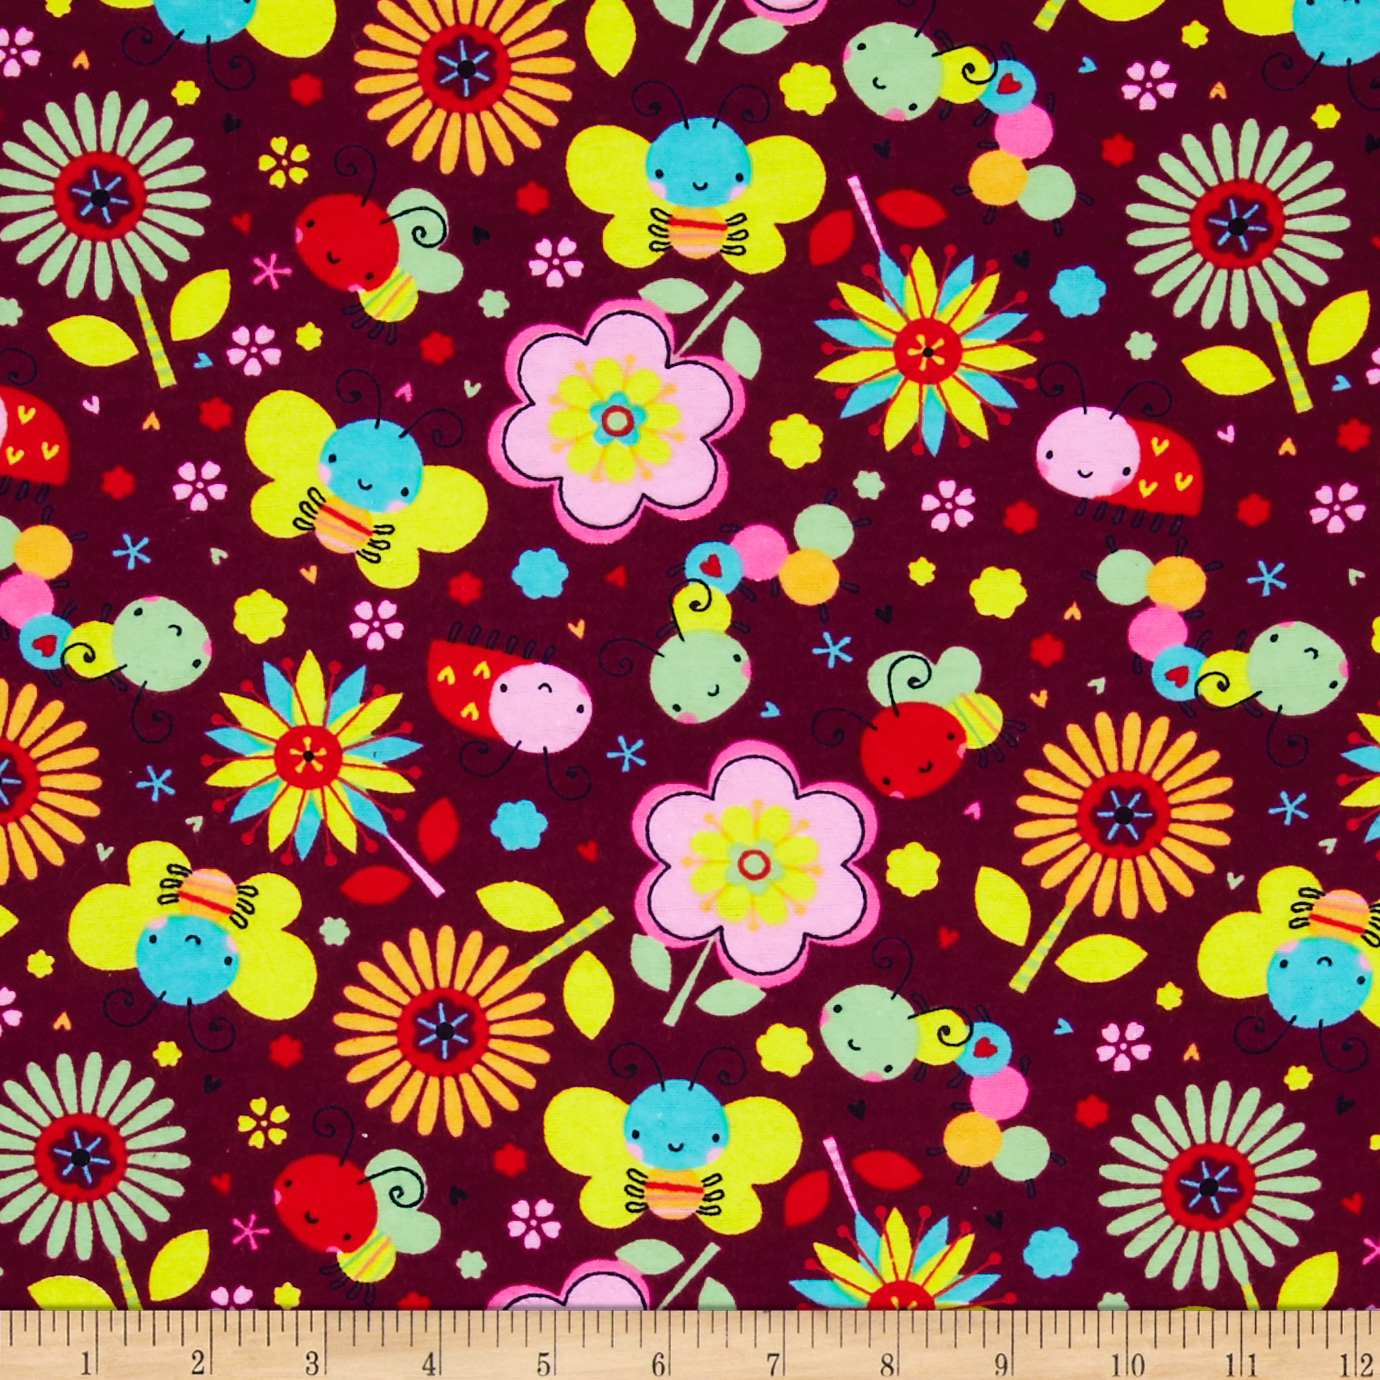 Flannel Bugs & Flowers Burgundy Fabric